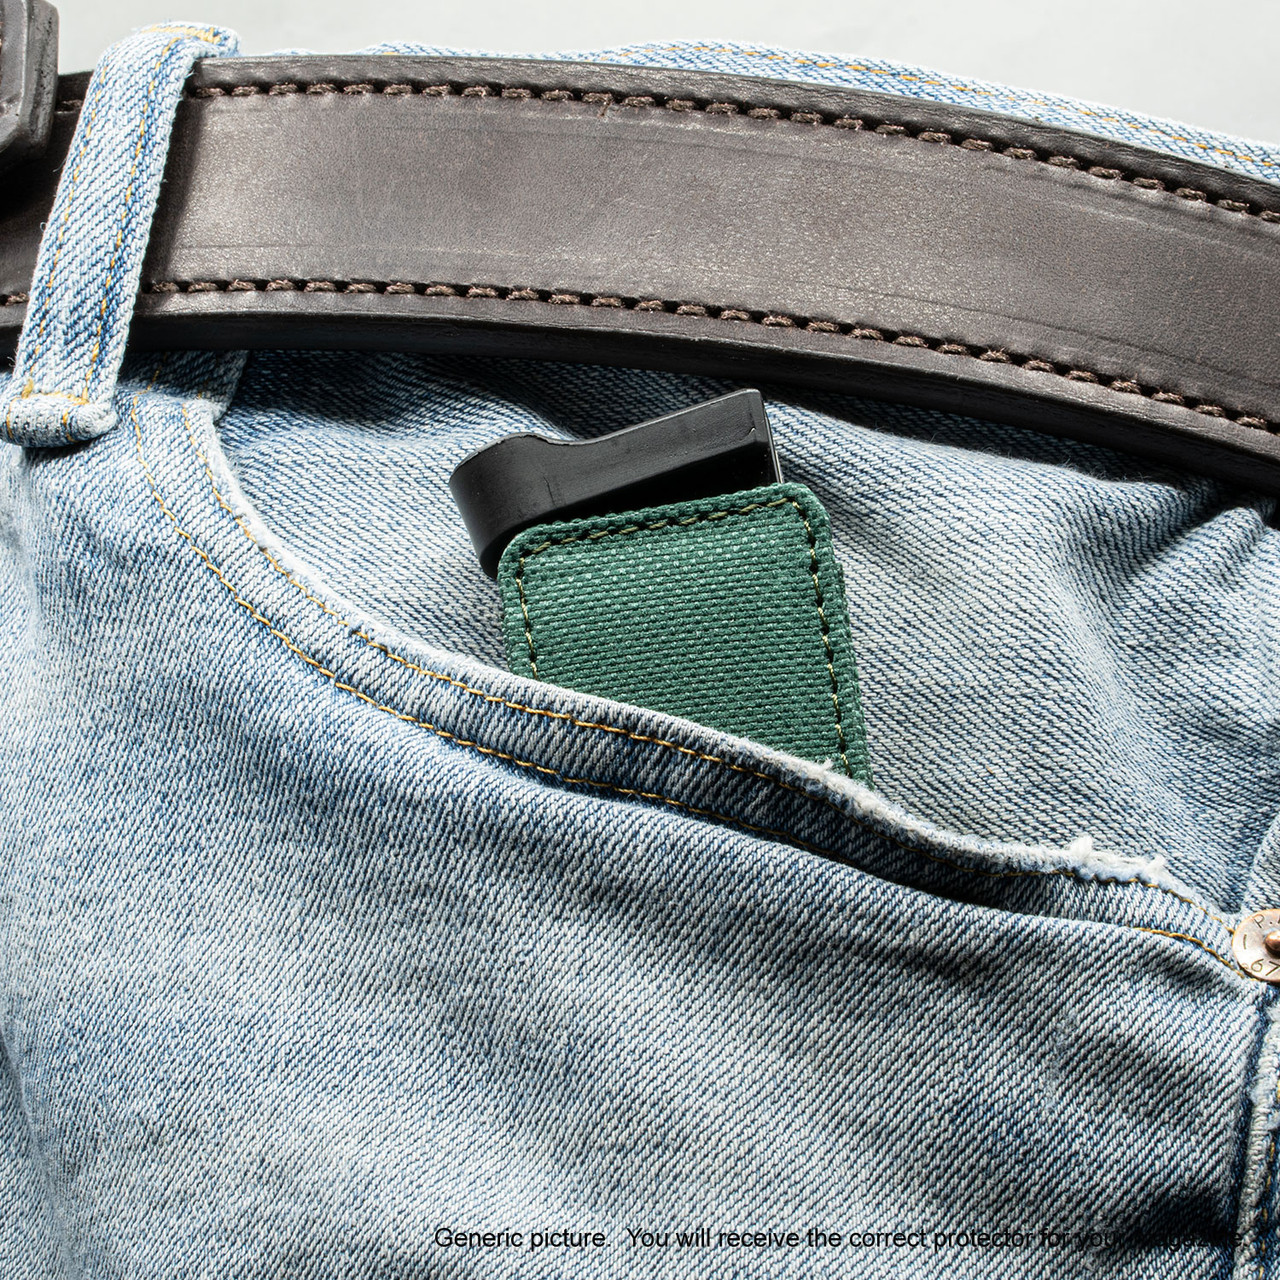 Walther PPK Green Covert Magazine Pocket Protector